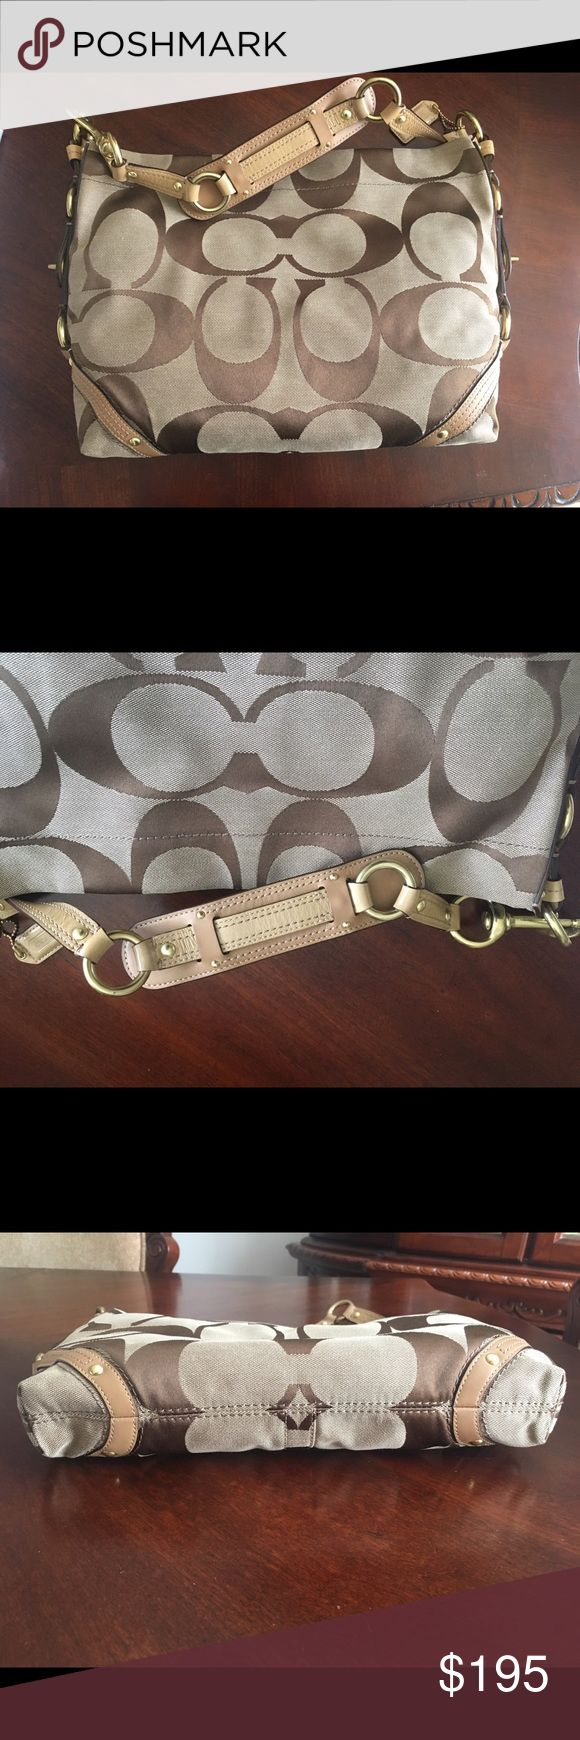 💯Authentic Coach Hobo Bag Practical brand new coach purse. Worn maybe once or twice. Mint condition. Dust bag included. Coach Bags Shoulder Bags